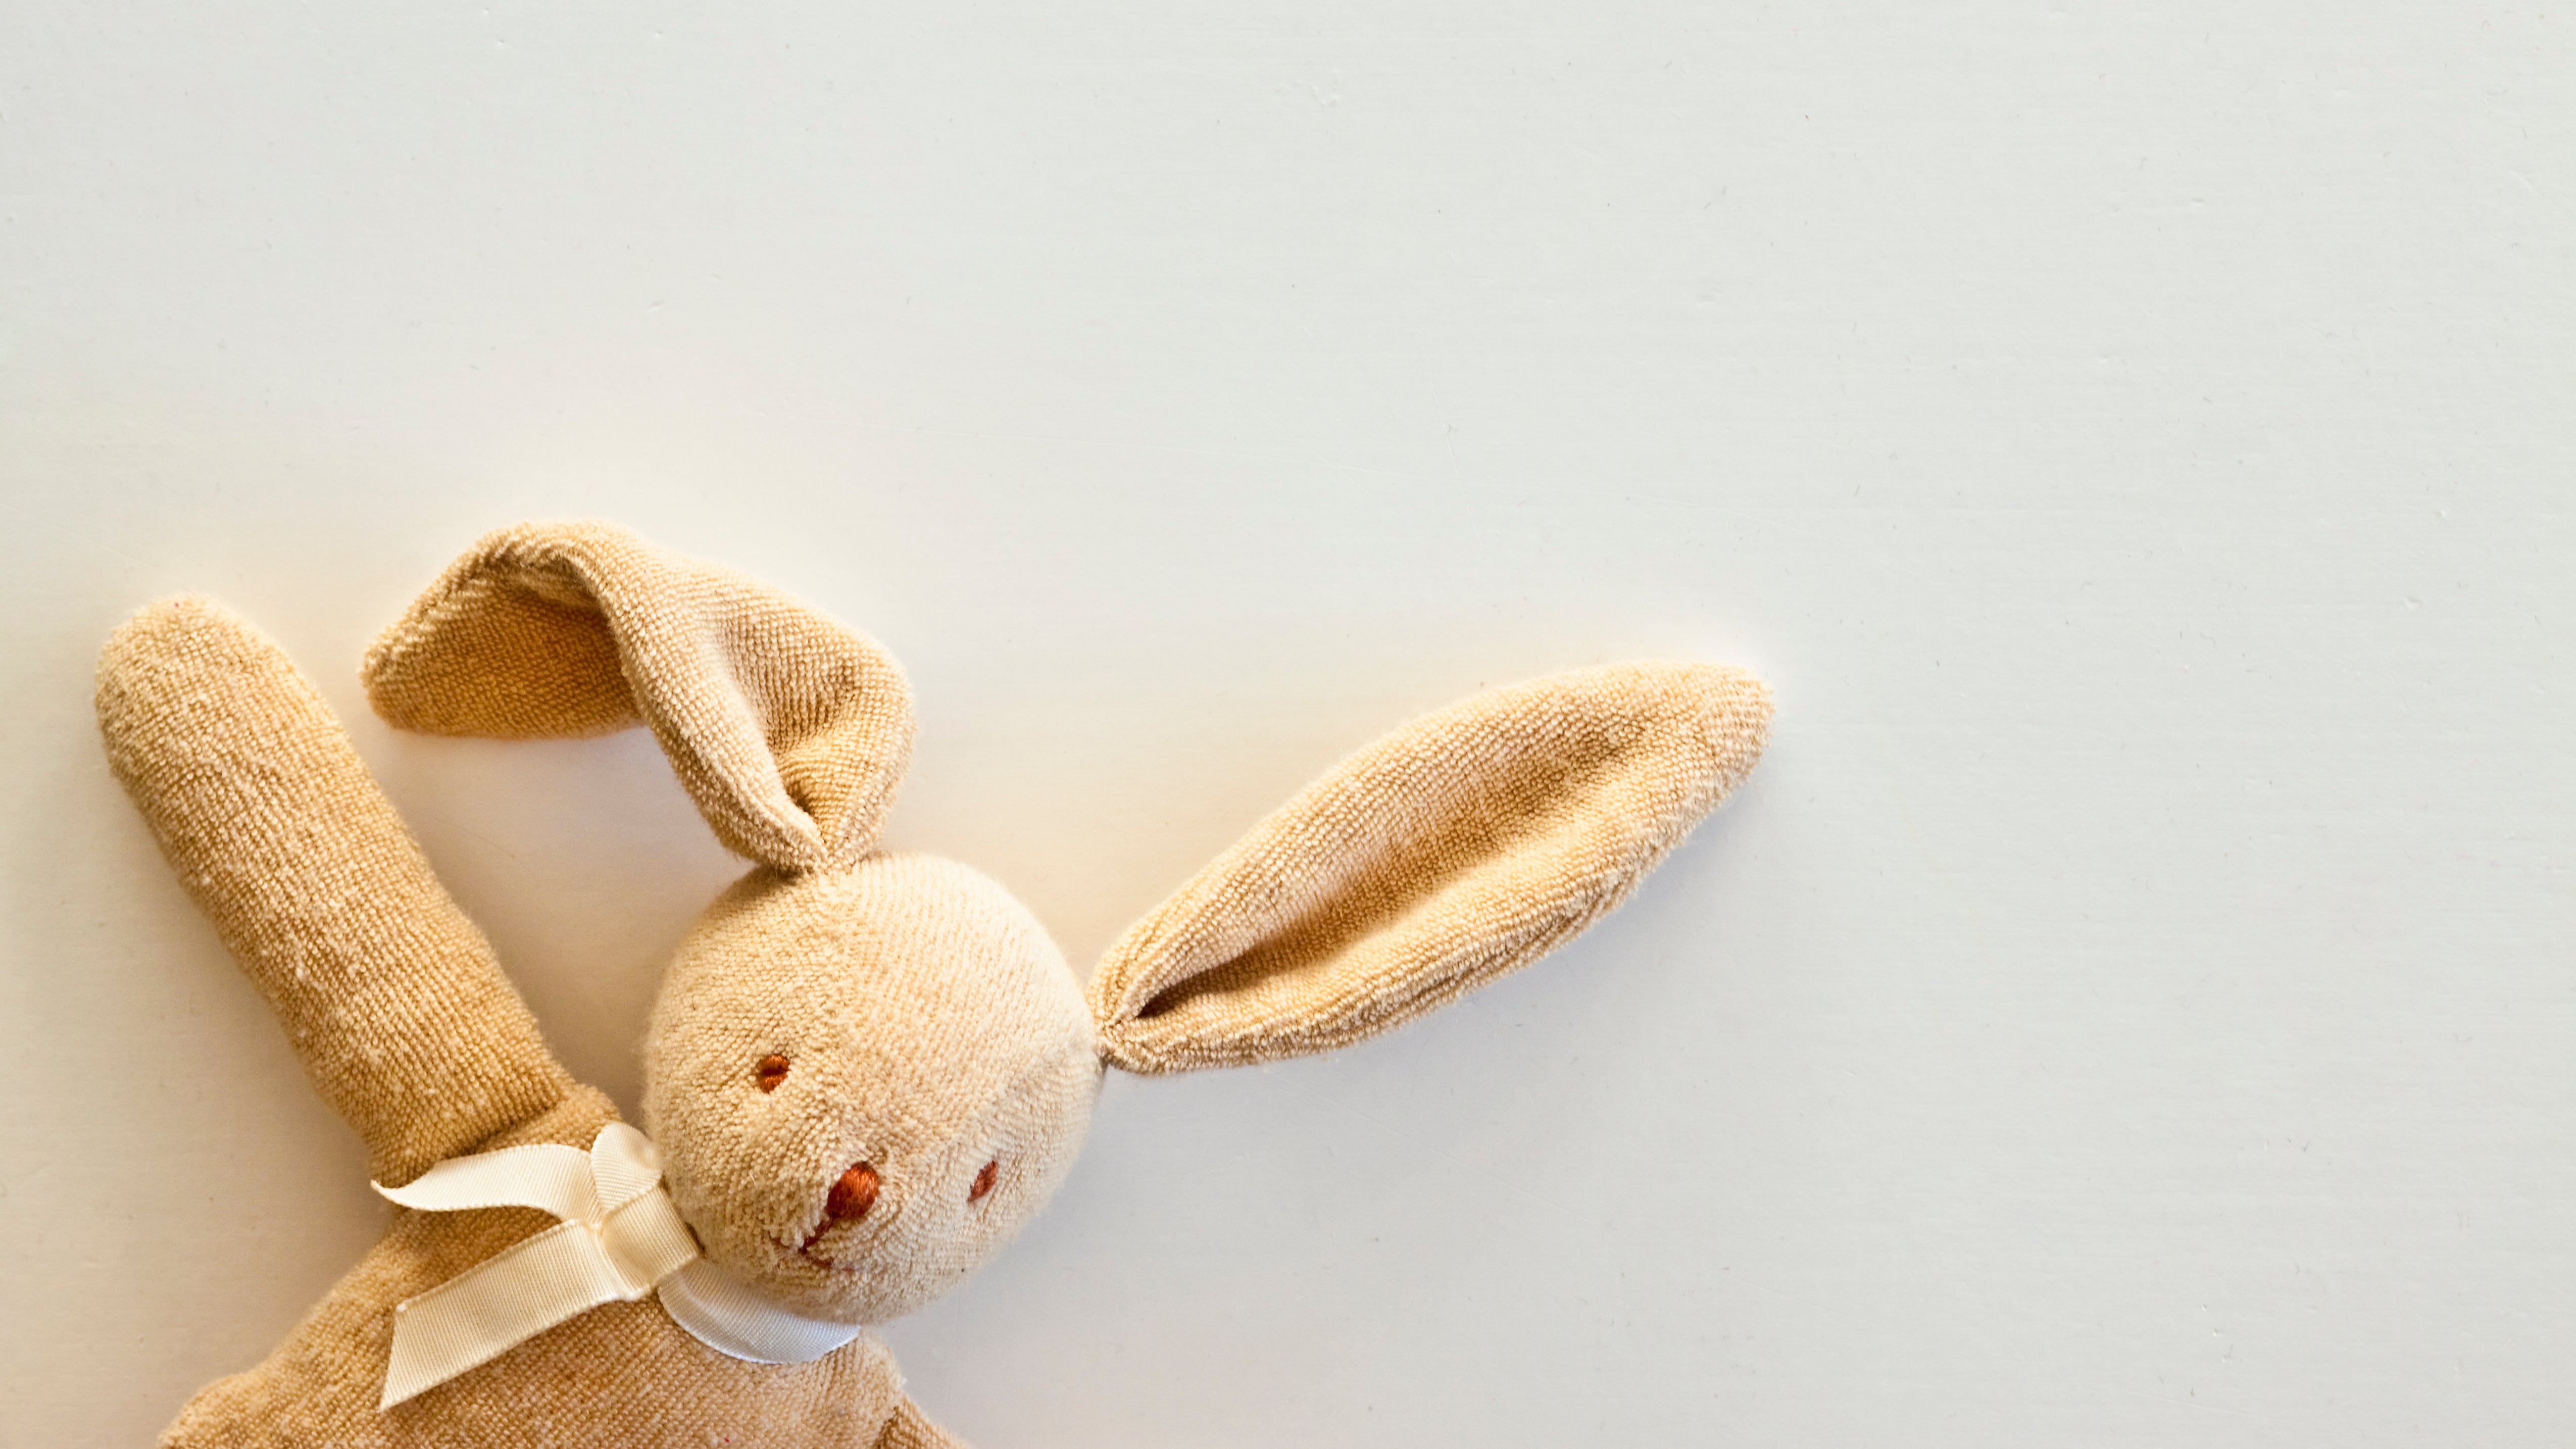 How To Find A Dupe Of Your Kid's Missing Stuffed Animal